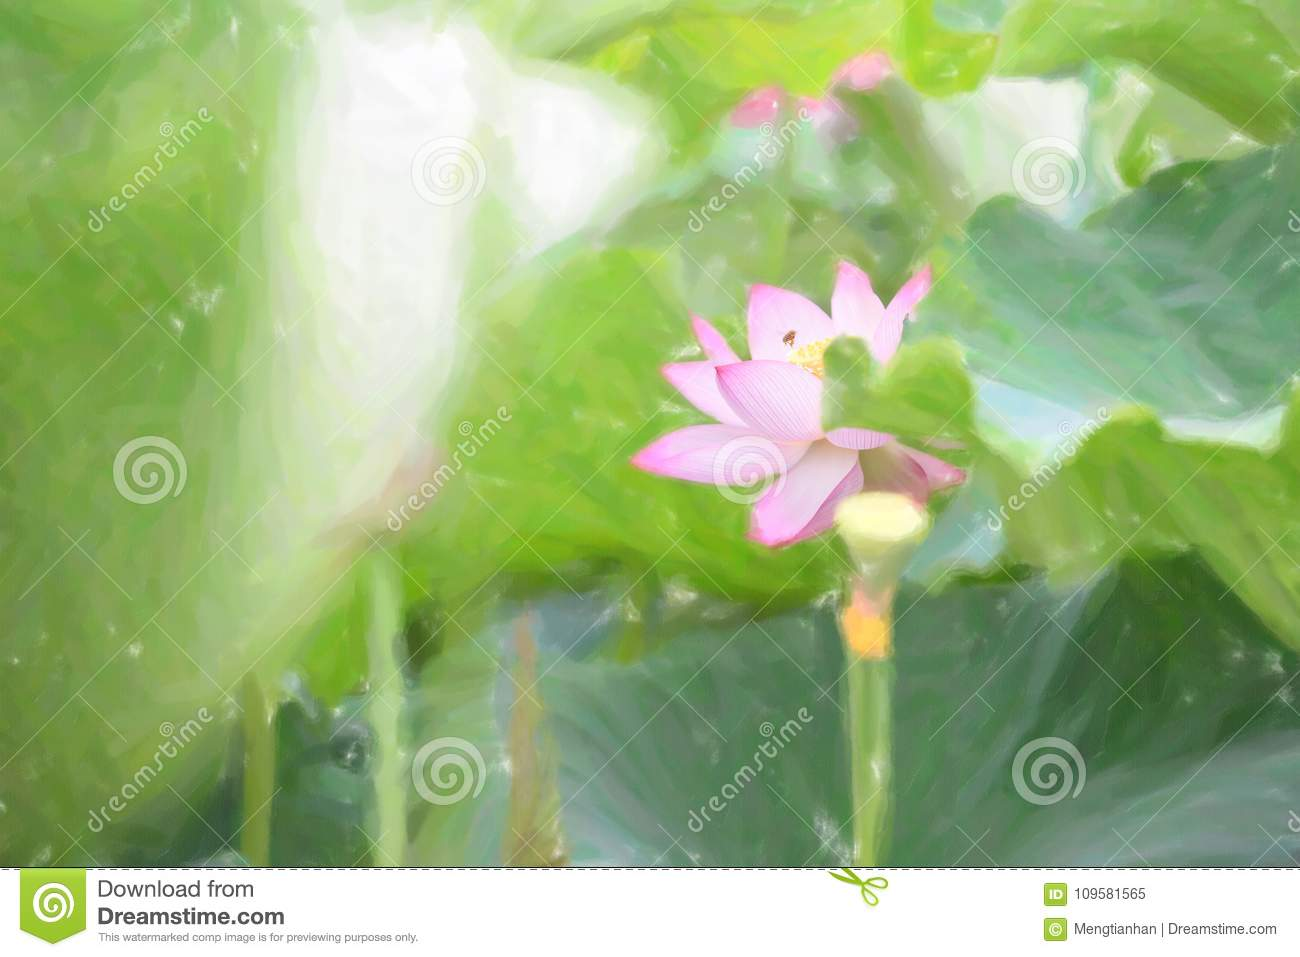 Honeybee collecting nectar red lotus flower is gorgeous stock download honeybee collecting nectar red lotus flower is gorgeous stock illustration illustration of bees izmirmasajfo